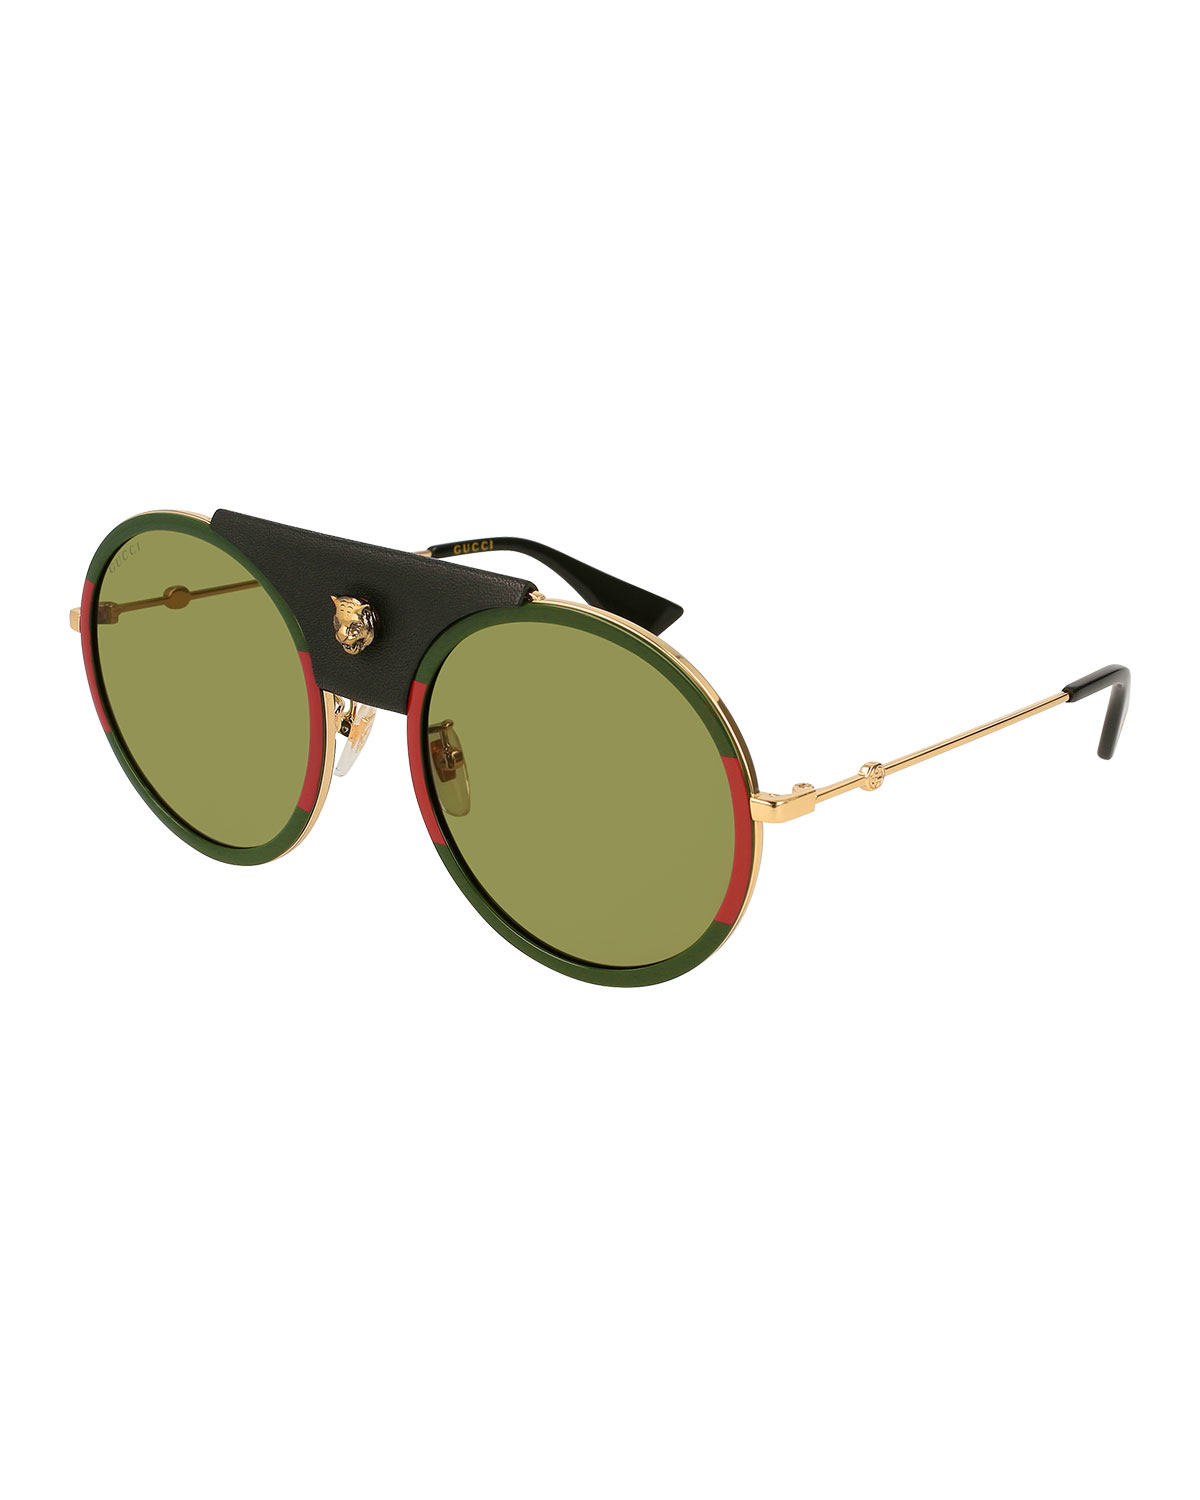 5f6ccac4bd5 Gucci round metal sunglasses with removable black leather piece jpg  1200x1500 Leather gucci eyeglasses